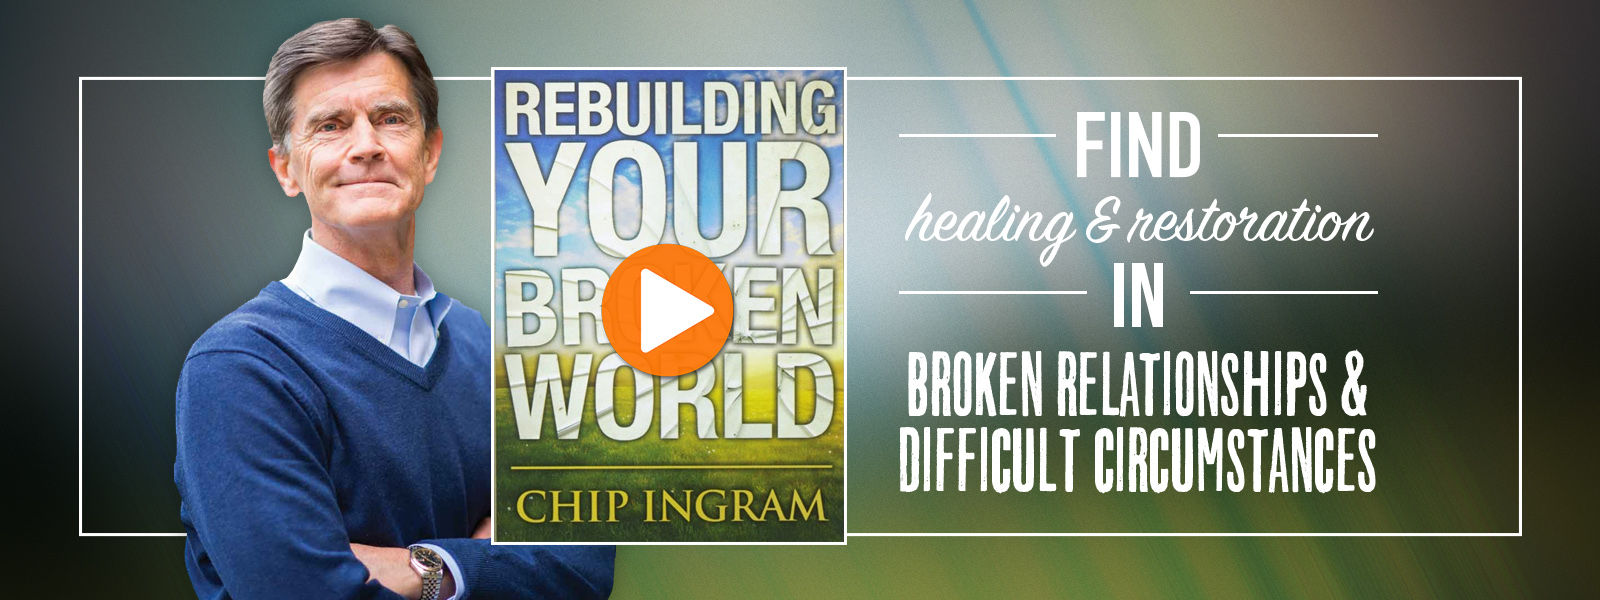 Rebuidling Your Broken World